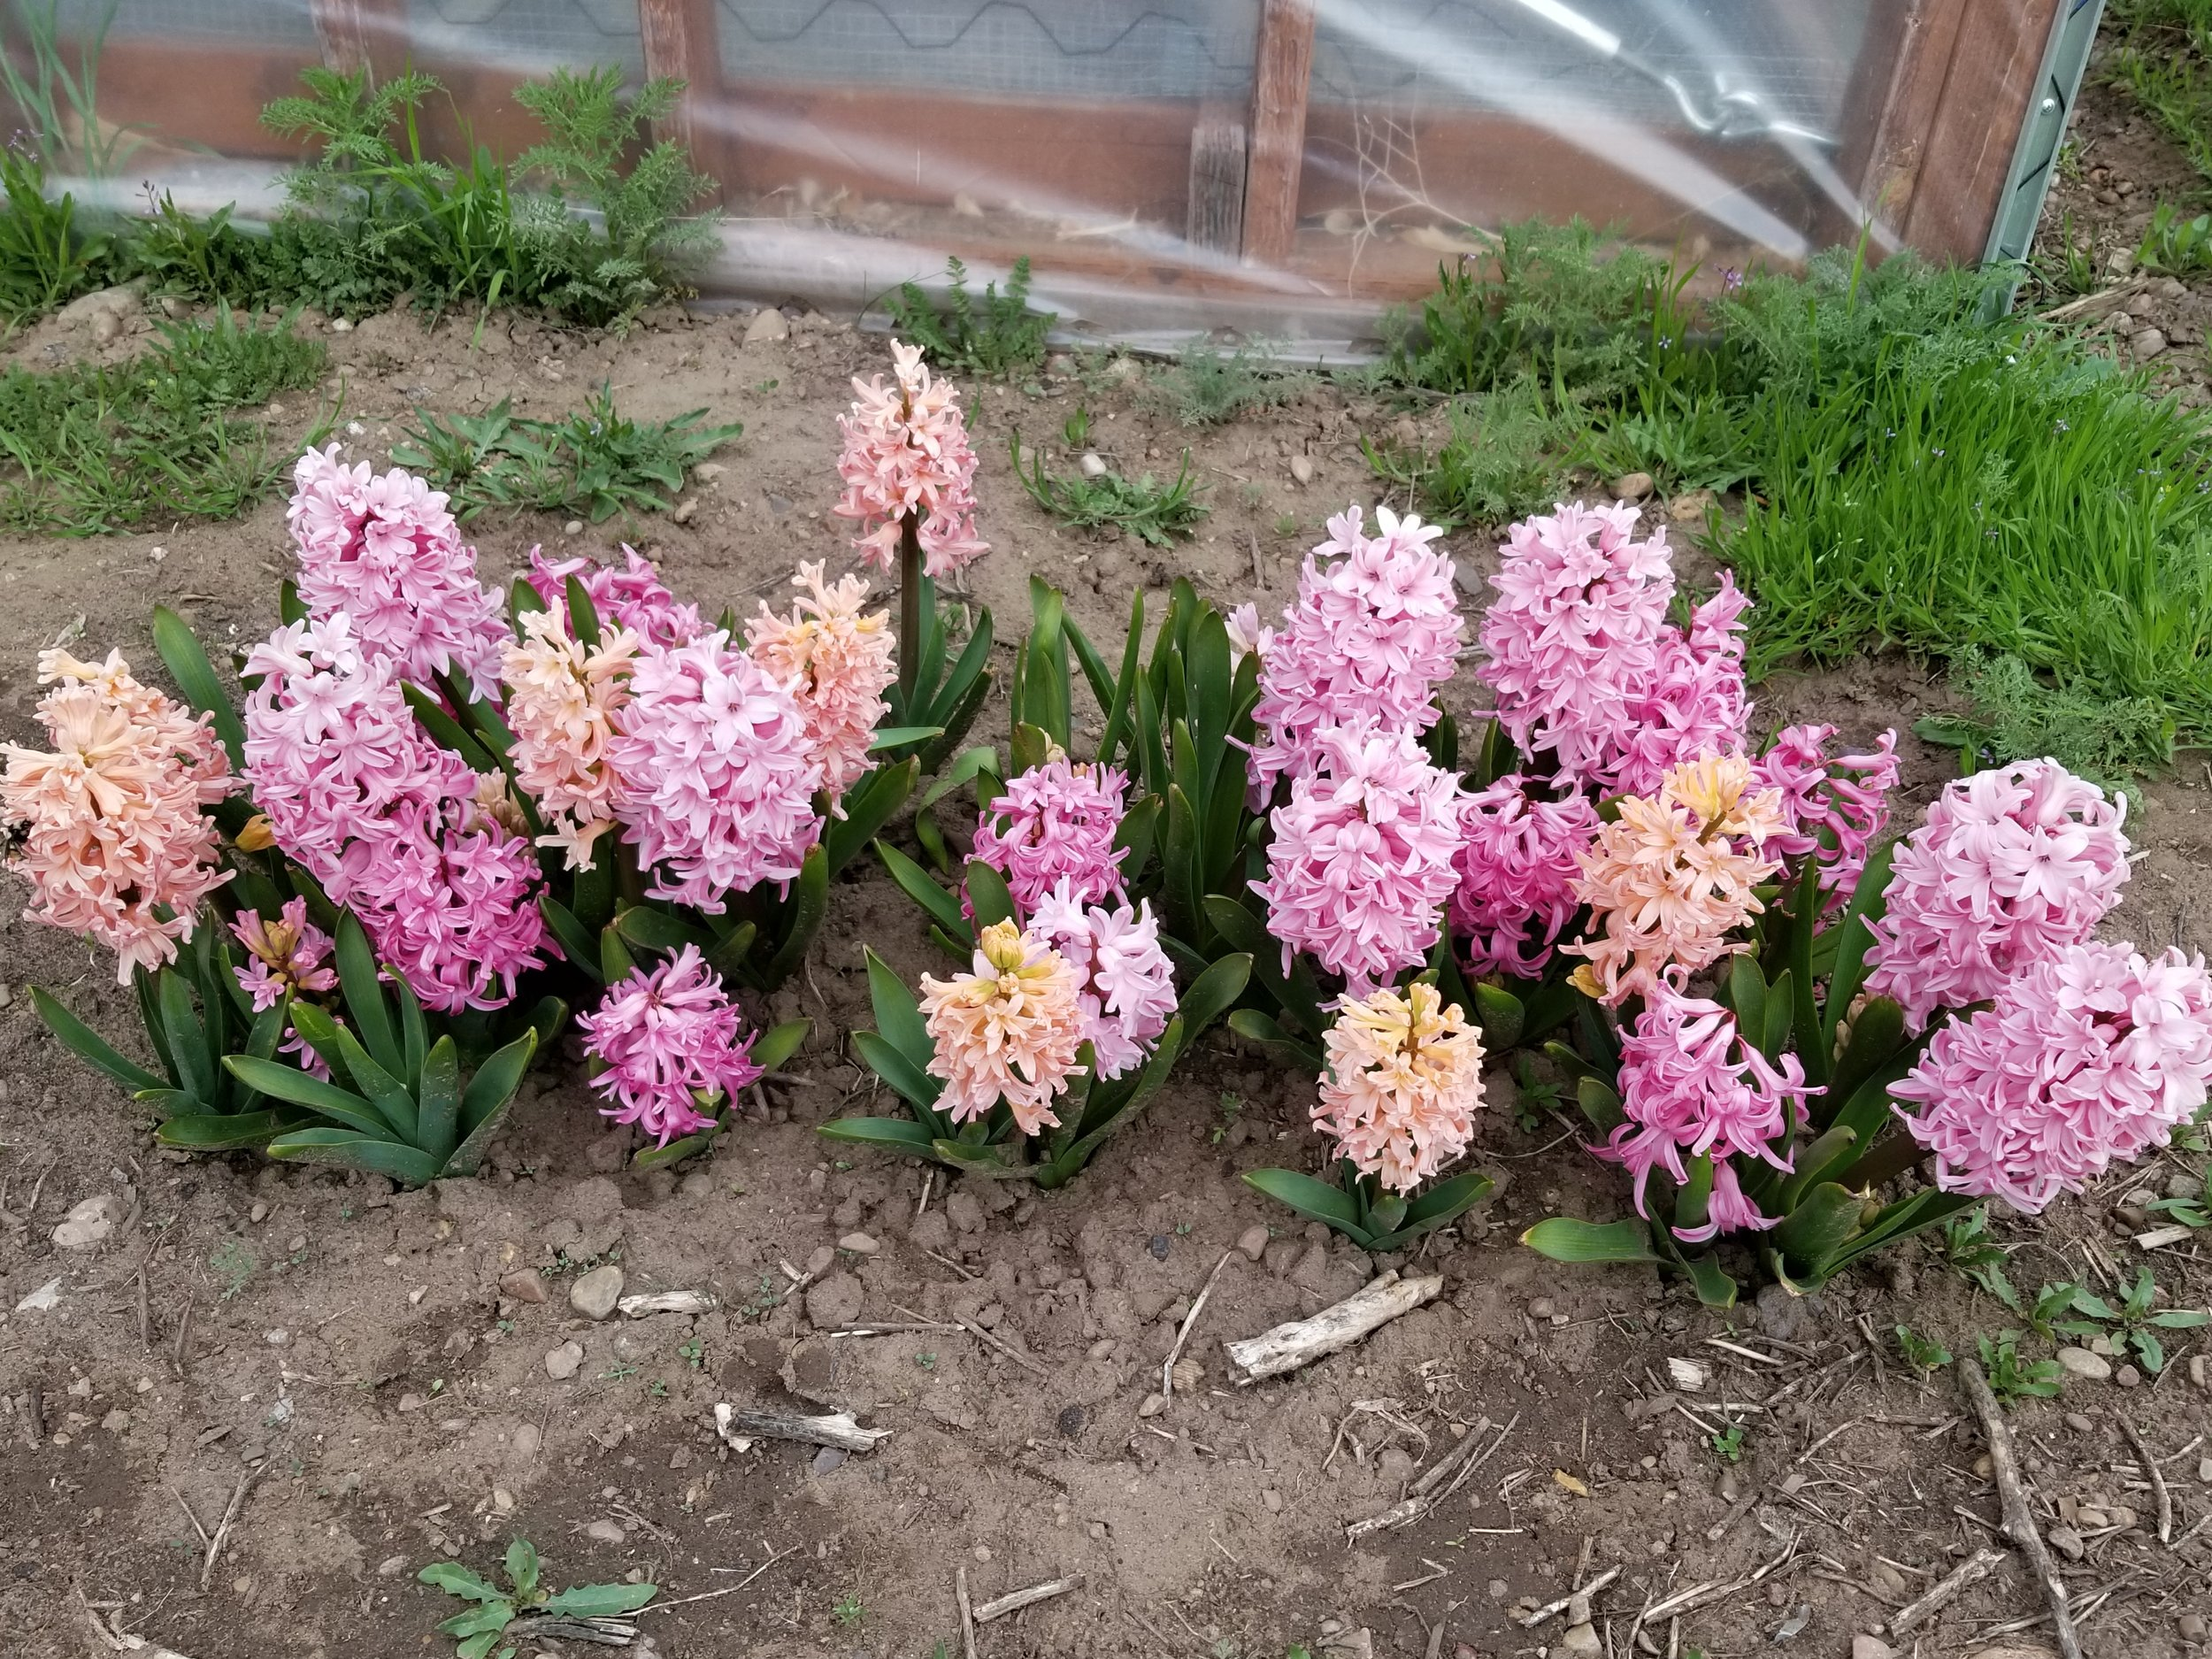 Lovely mix of hyacinths behind the greenhouse. Next year I need to add some other colors!